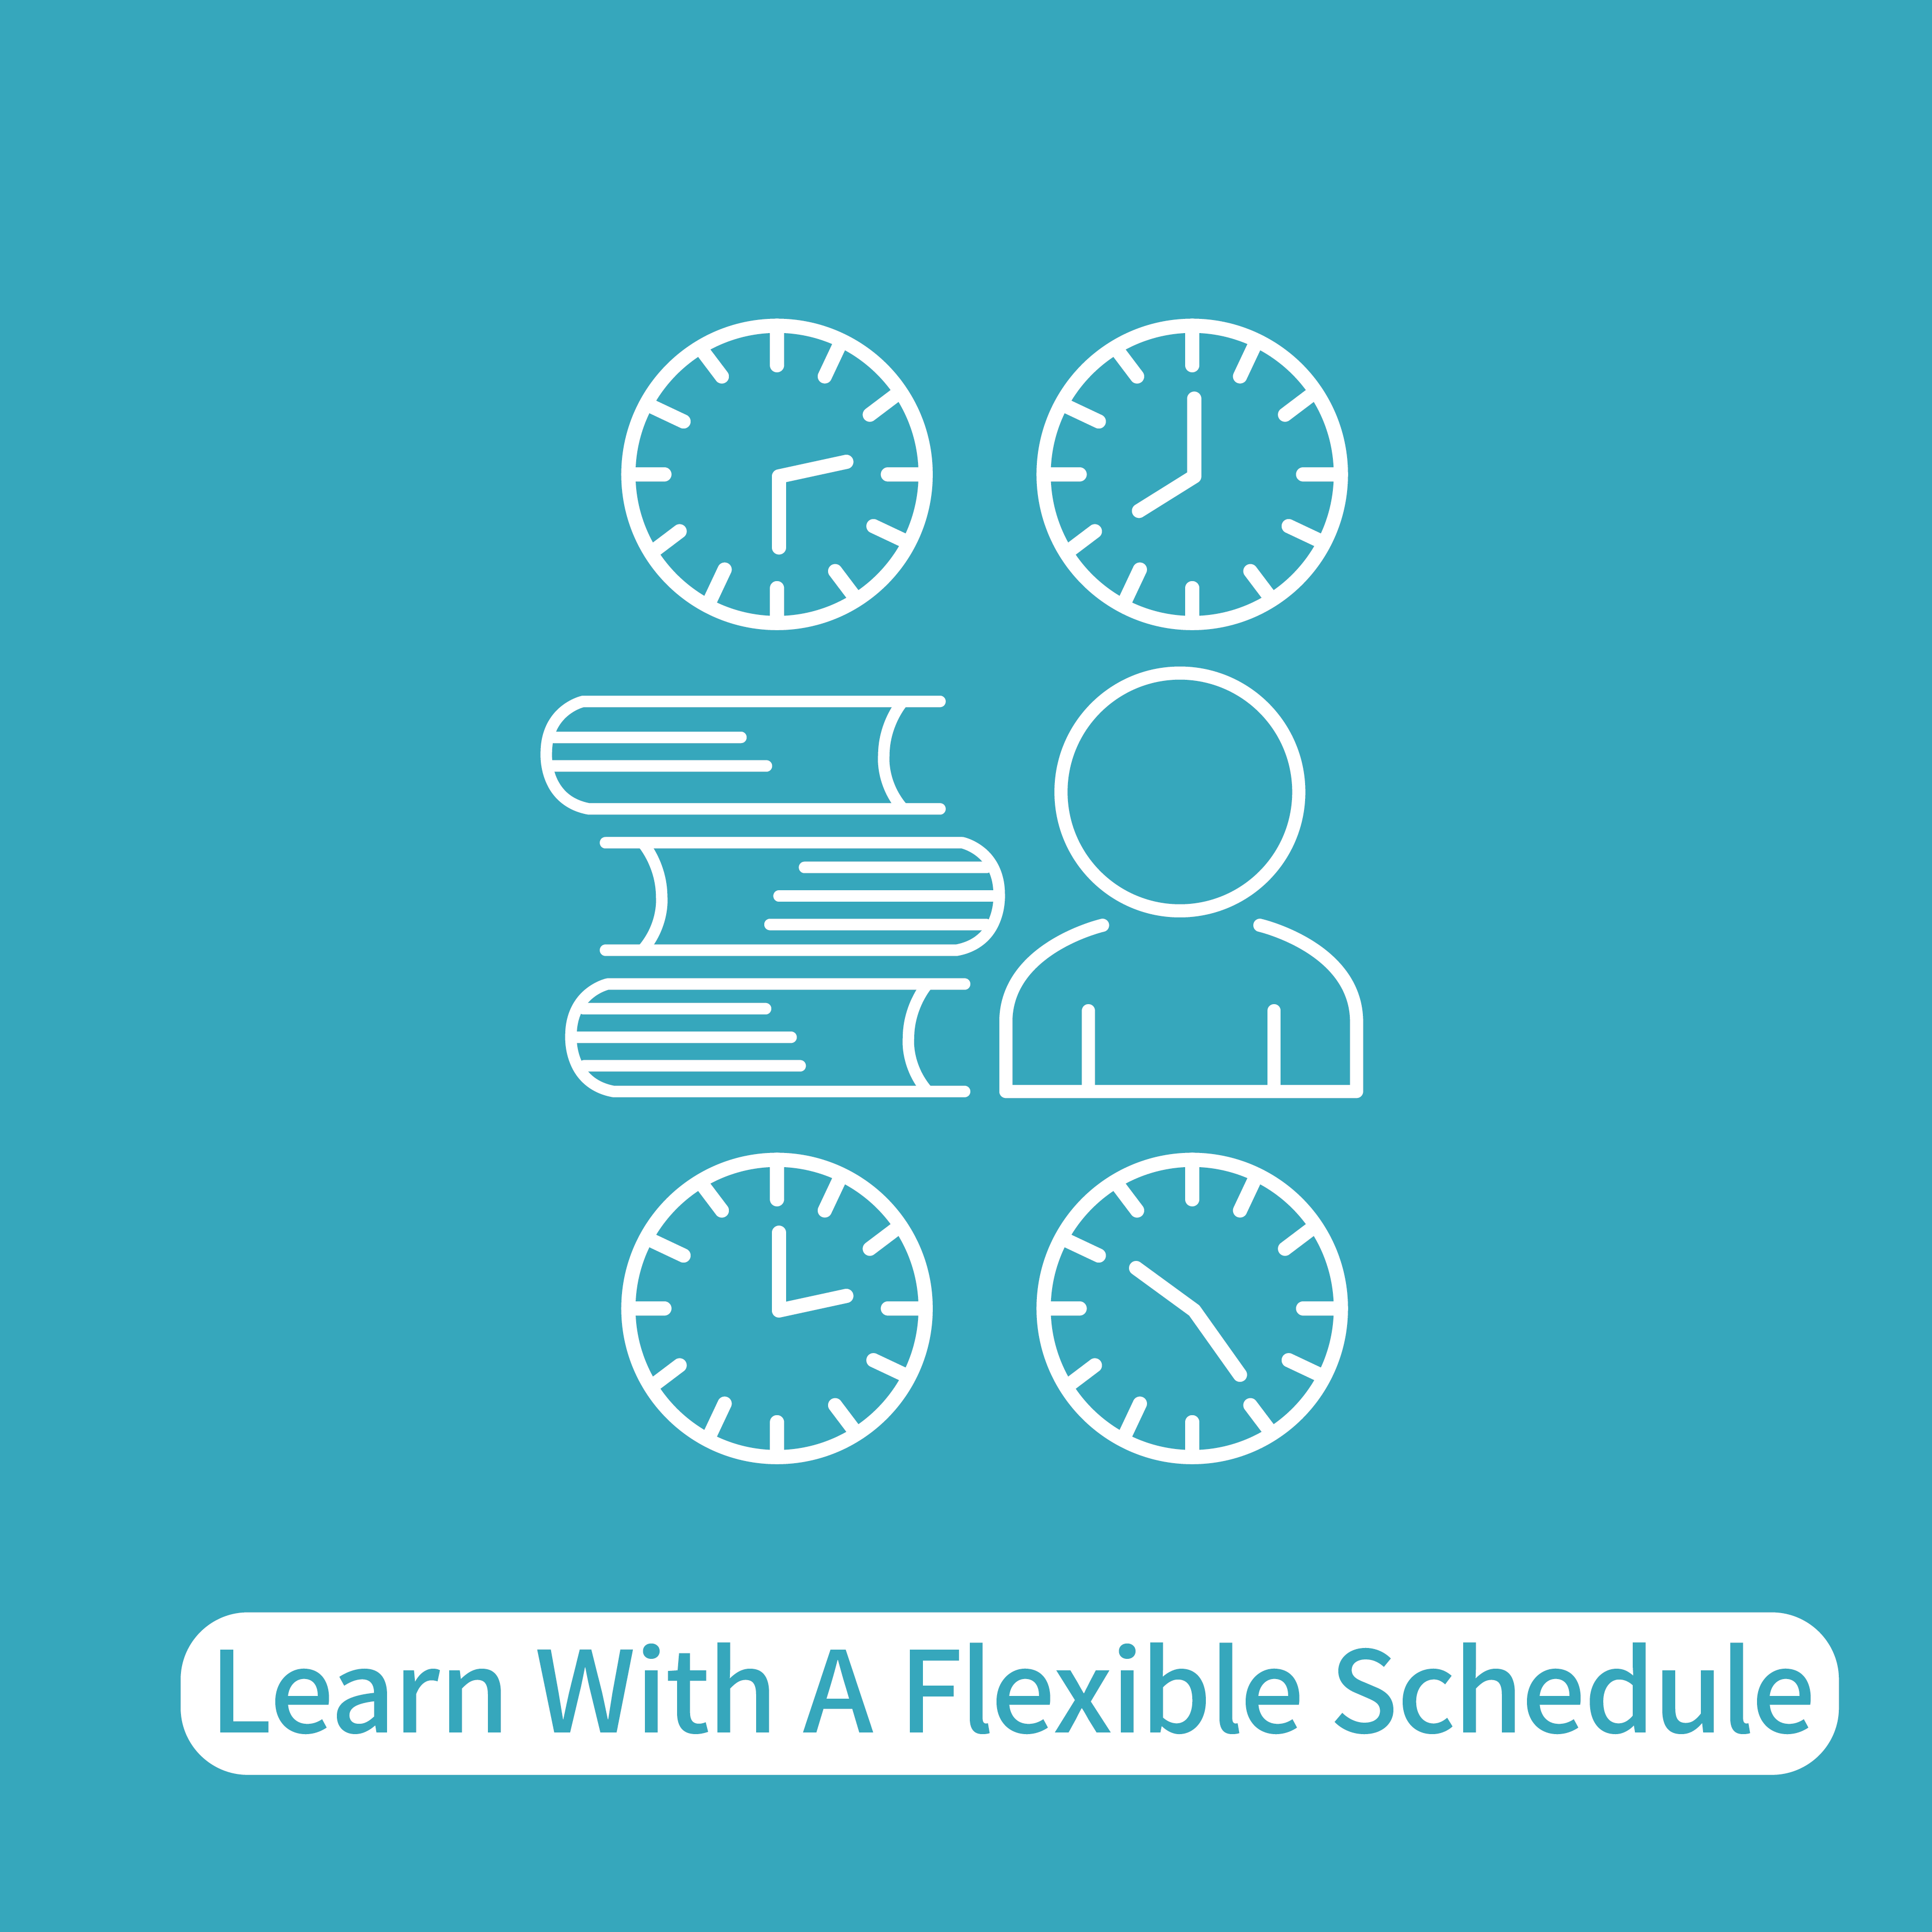 learn with a flexible schedule